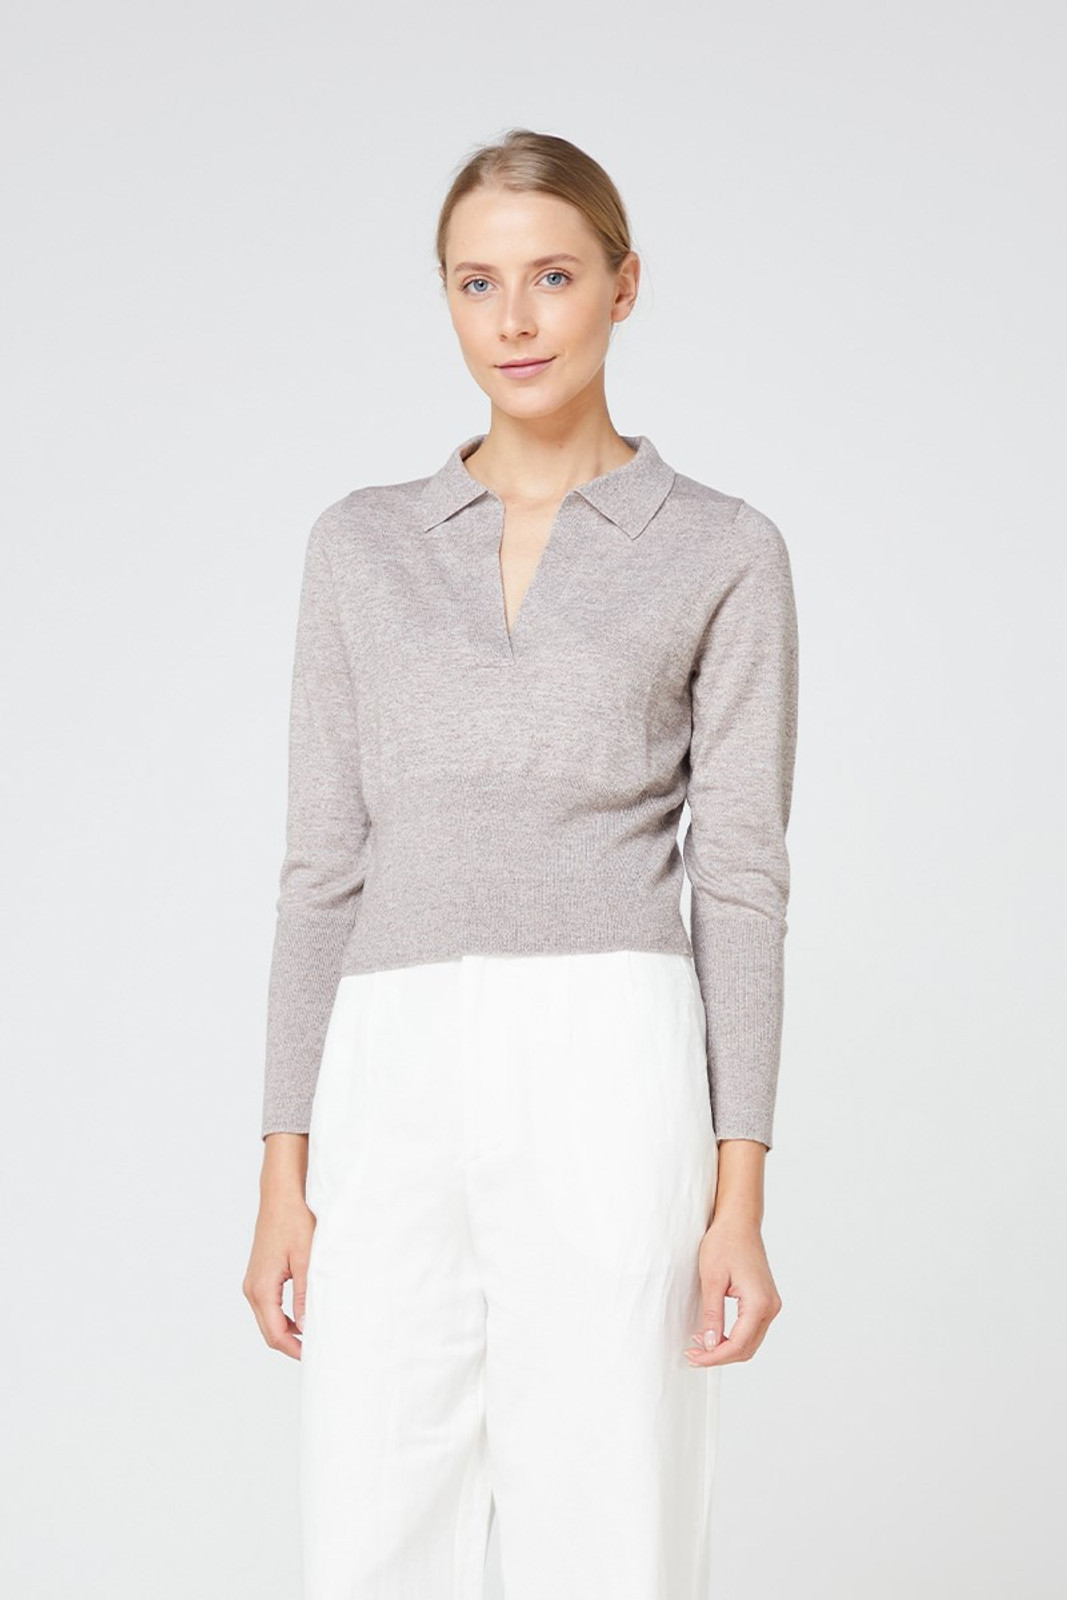 Elka Collective Bosa Knit Brown  1